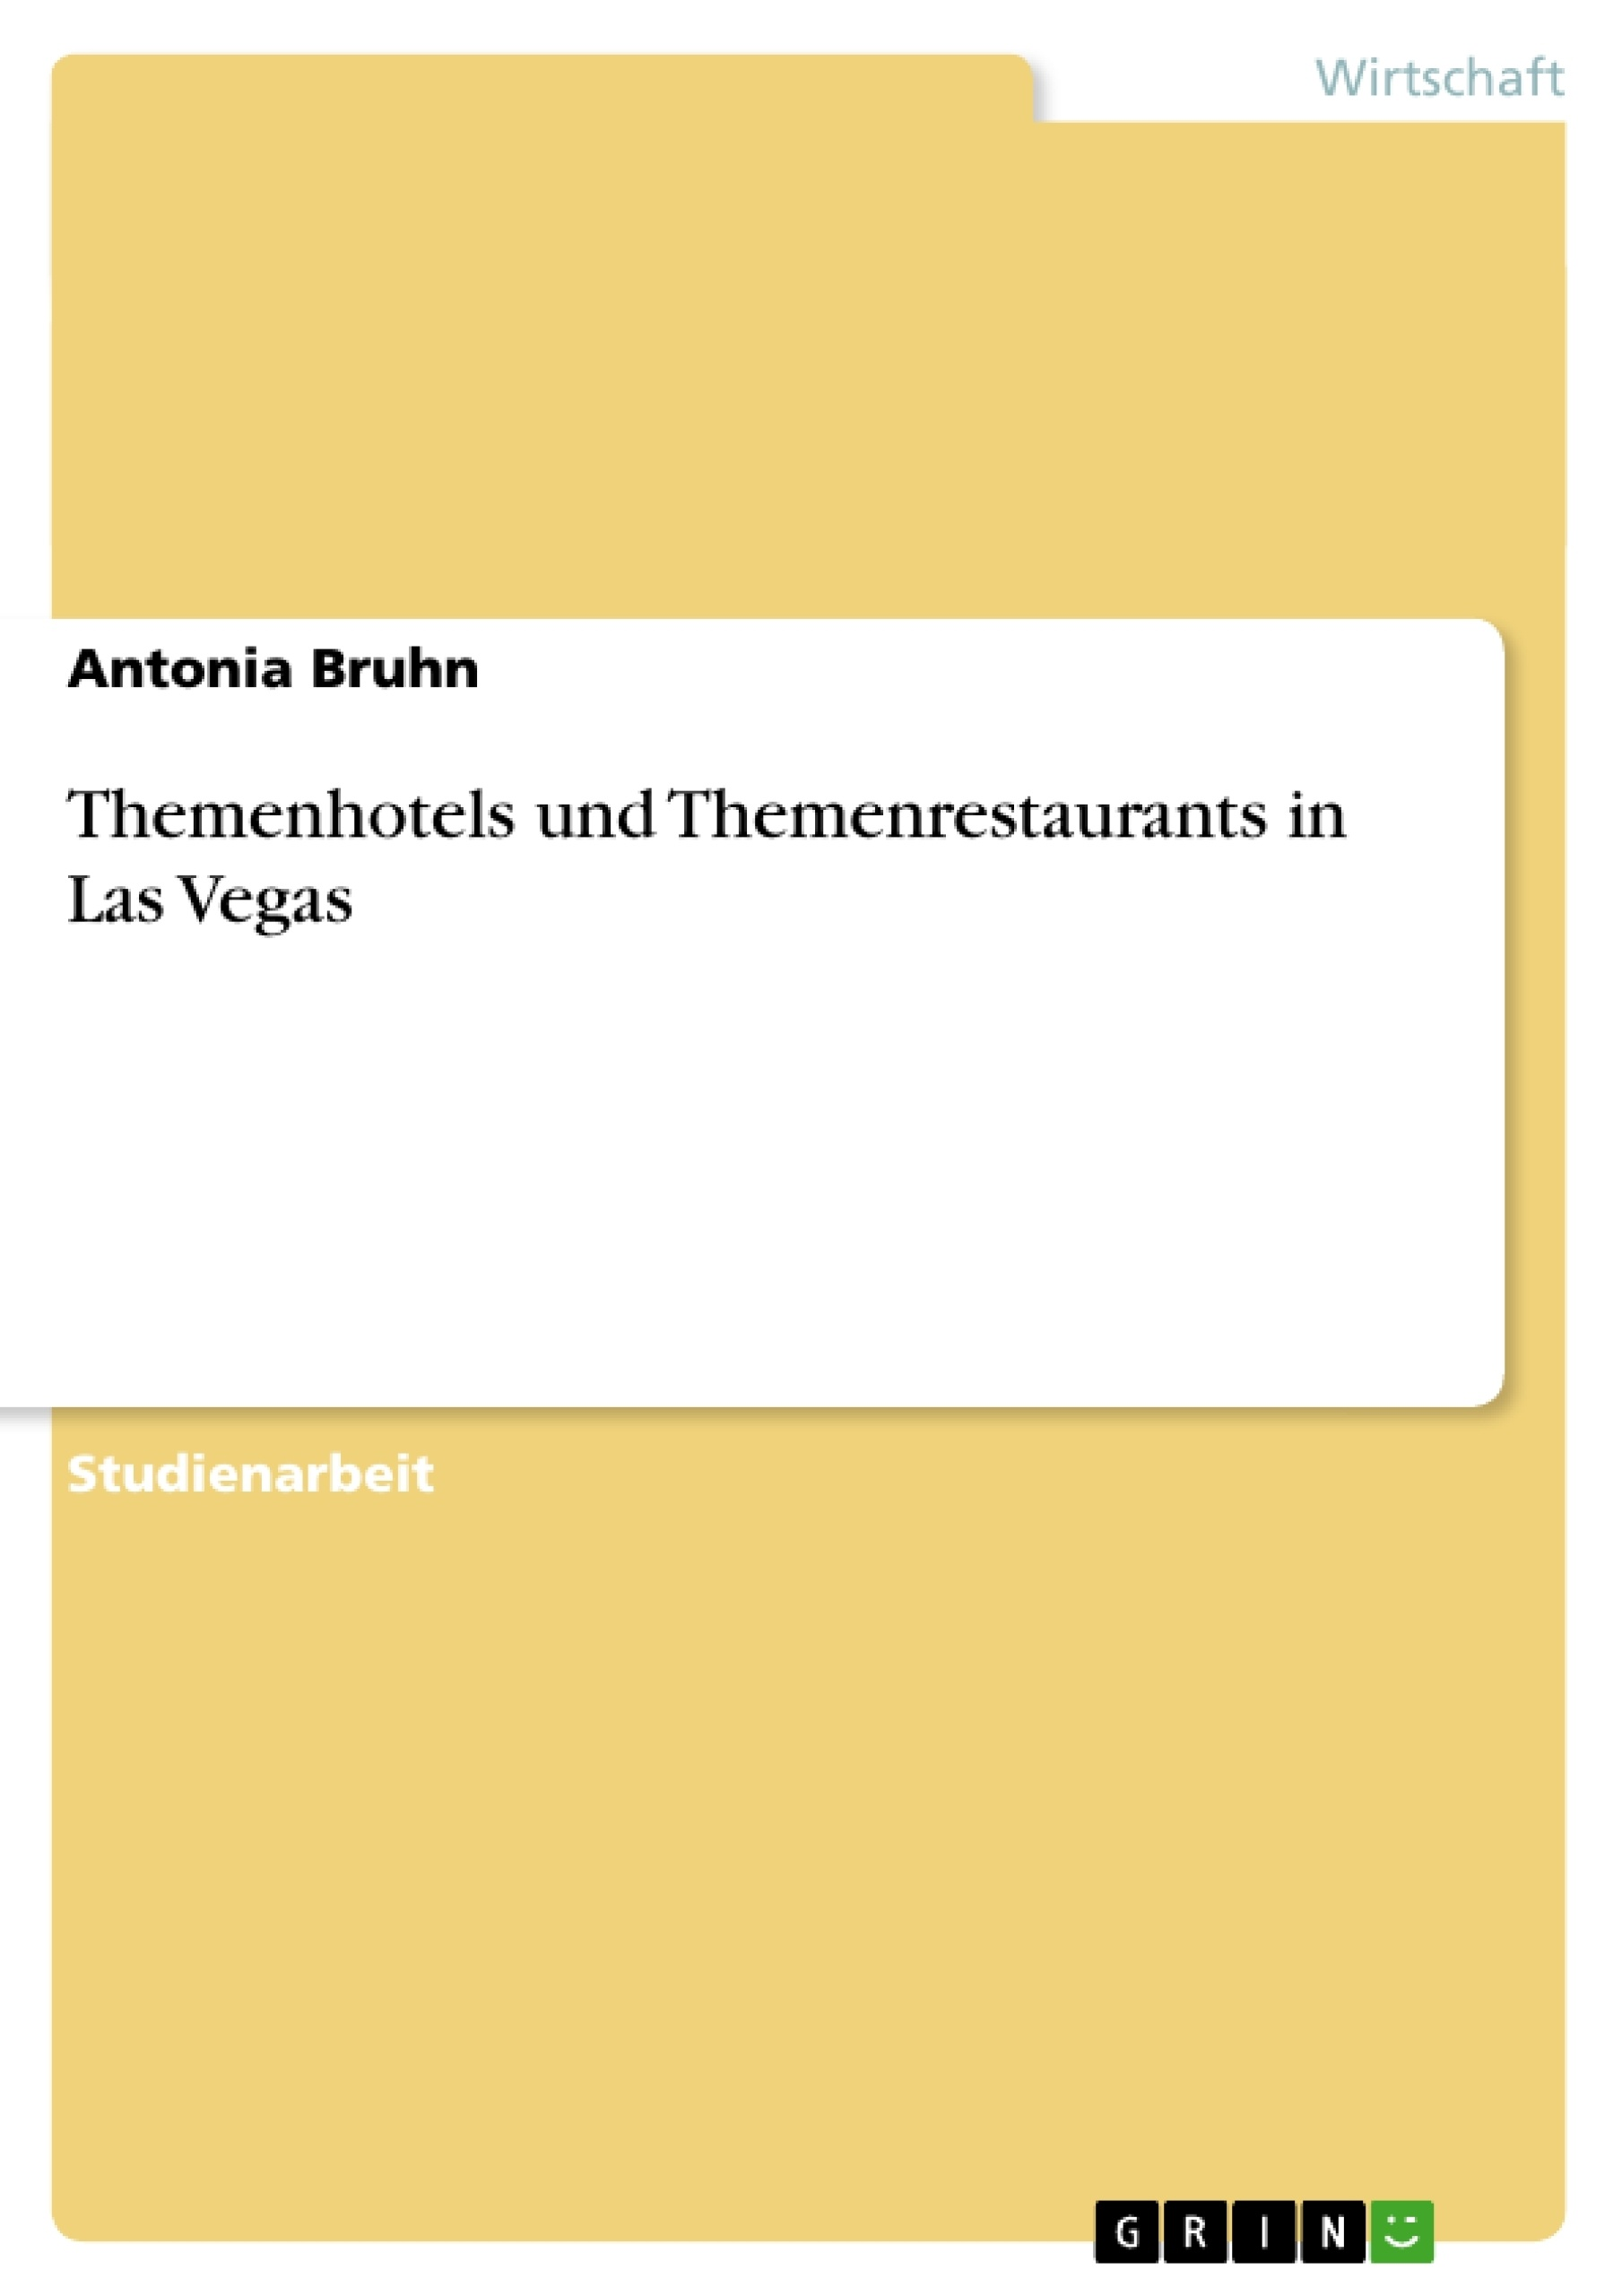 Titel: Themenhotels und Themenrestaurants  in Las Vegas